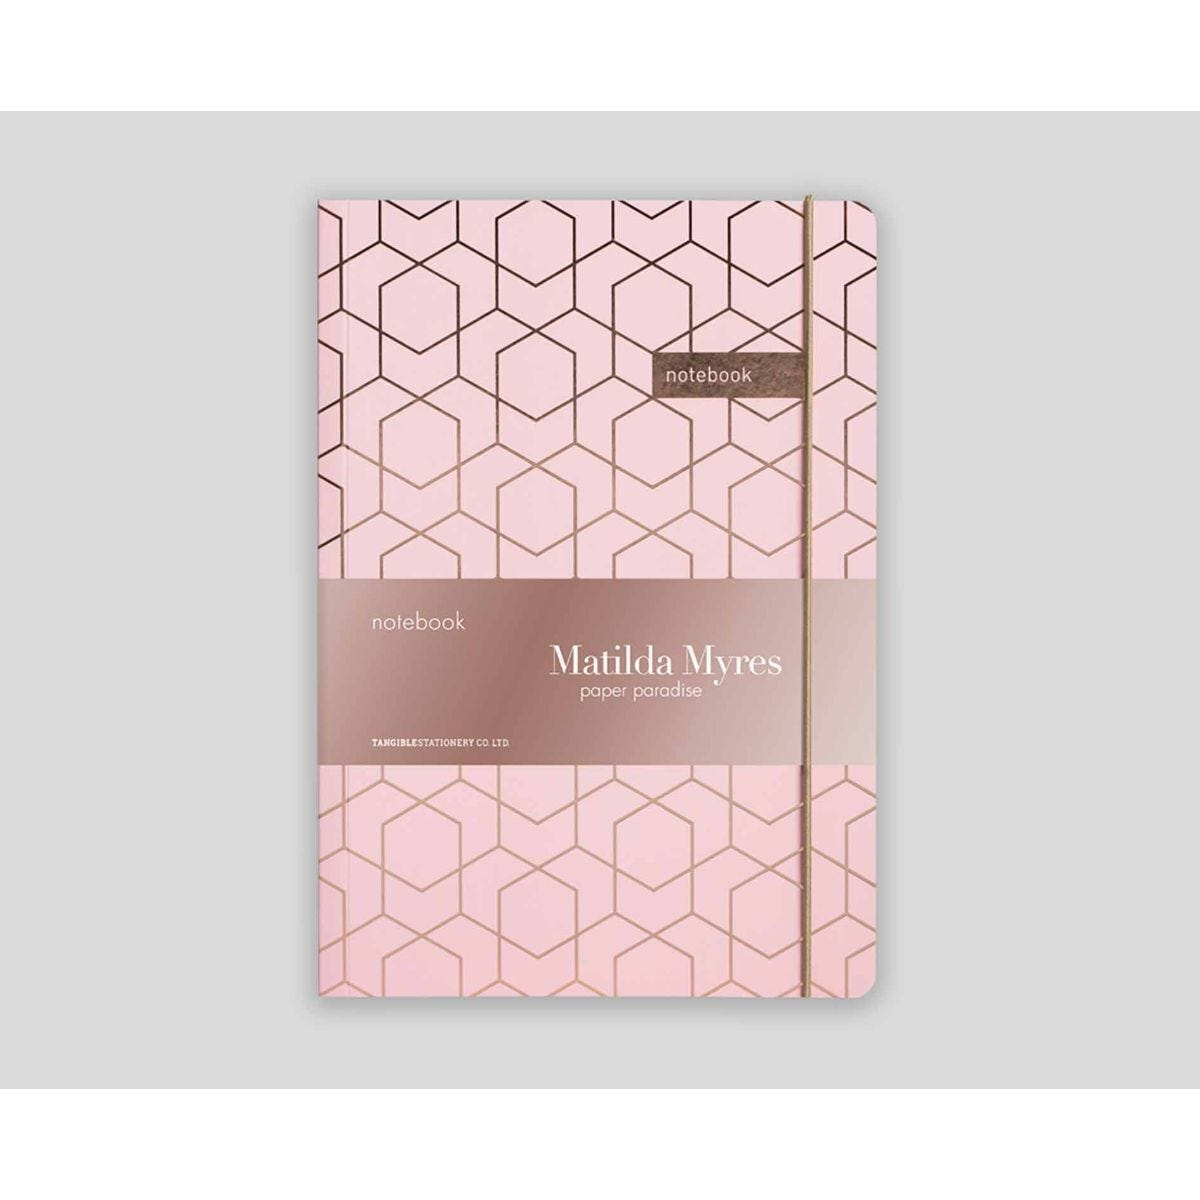 Matilda Myres Geometric Notebook Ruled A5 192 Pages